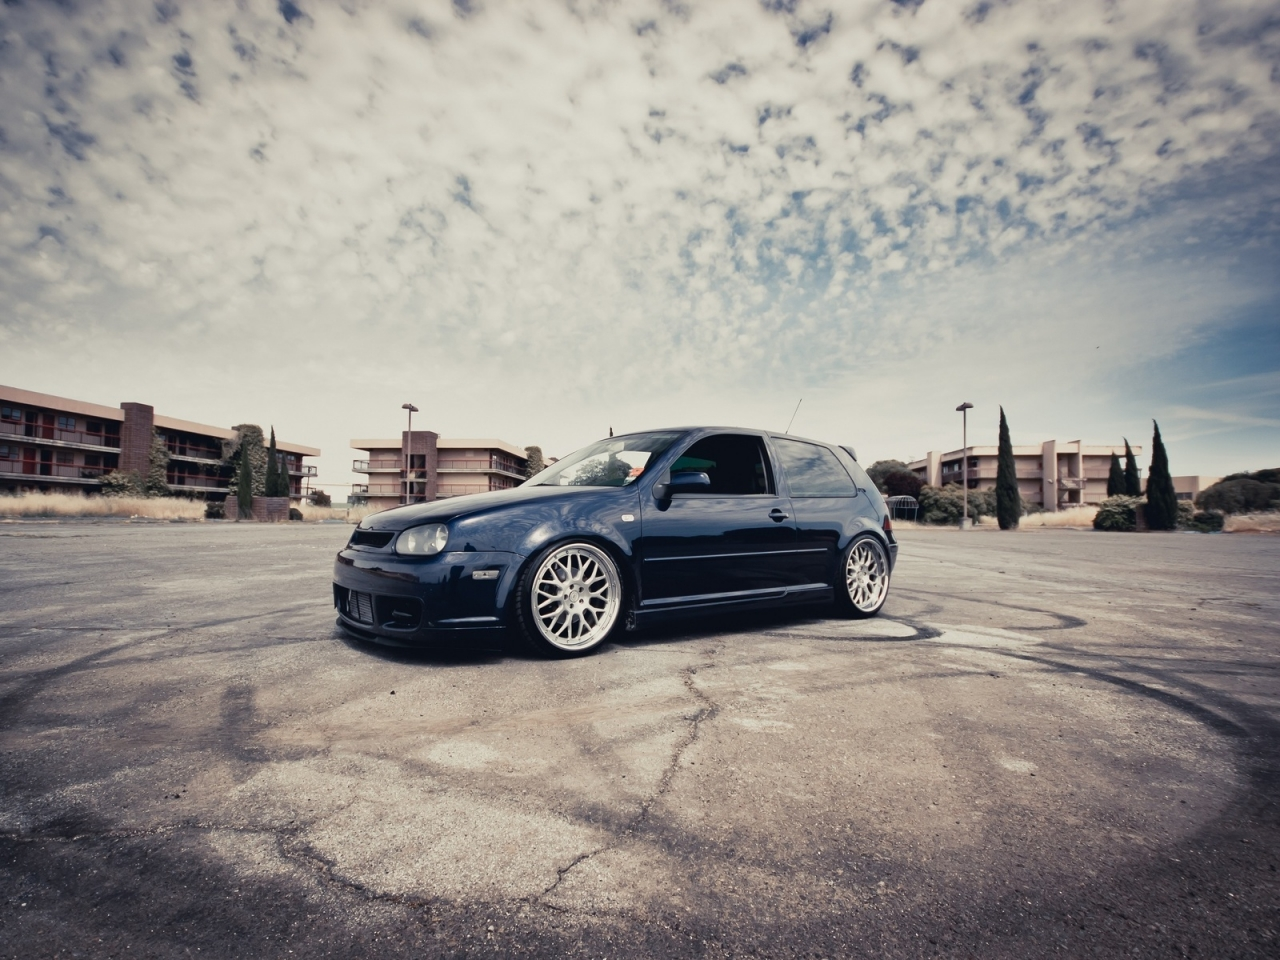 VW Golf III Coupe Tuning for 1280 x 960 resolution